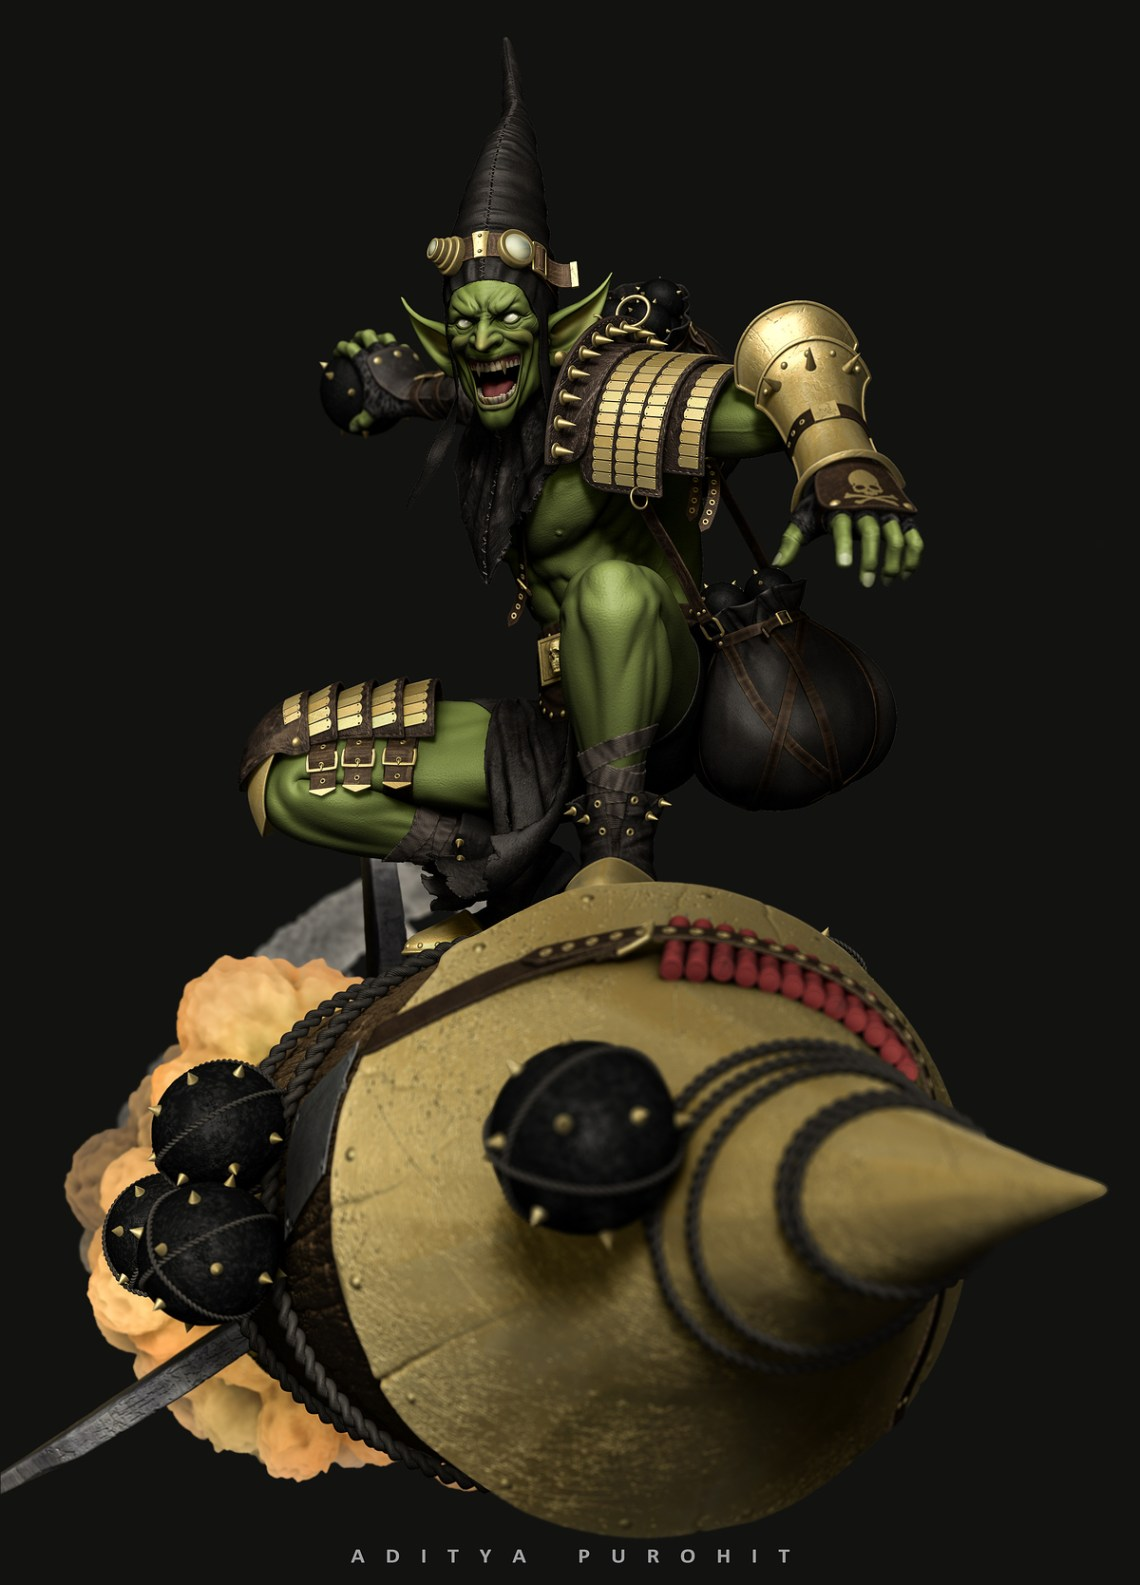 bombird_Goblin_Final_render_12